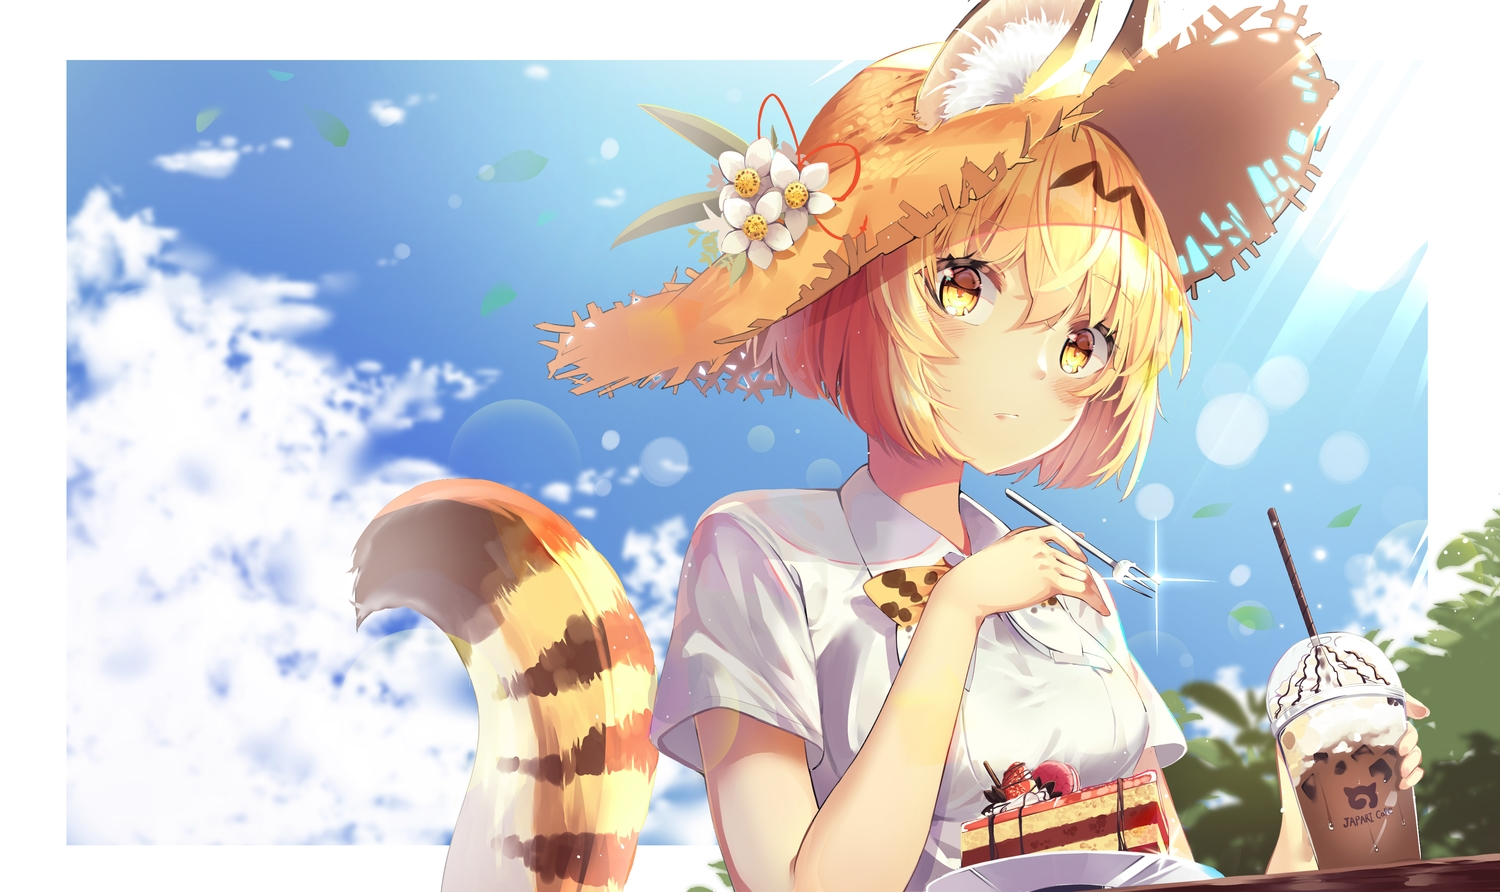 animal_ears animal_ears_(artist) anthropomorphism blonde_hair blush cake catgirl clouds drink flowers food fruit hat kemono_friends serval short_hair sky strawberry tail